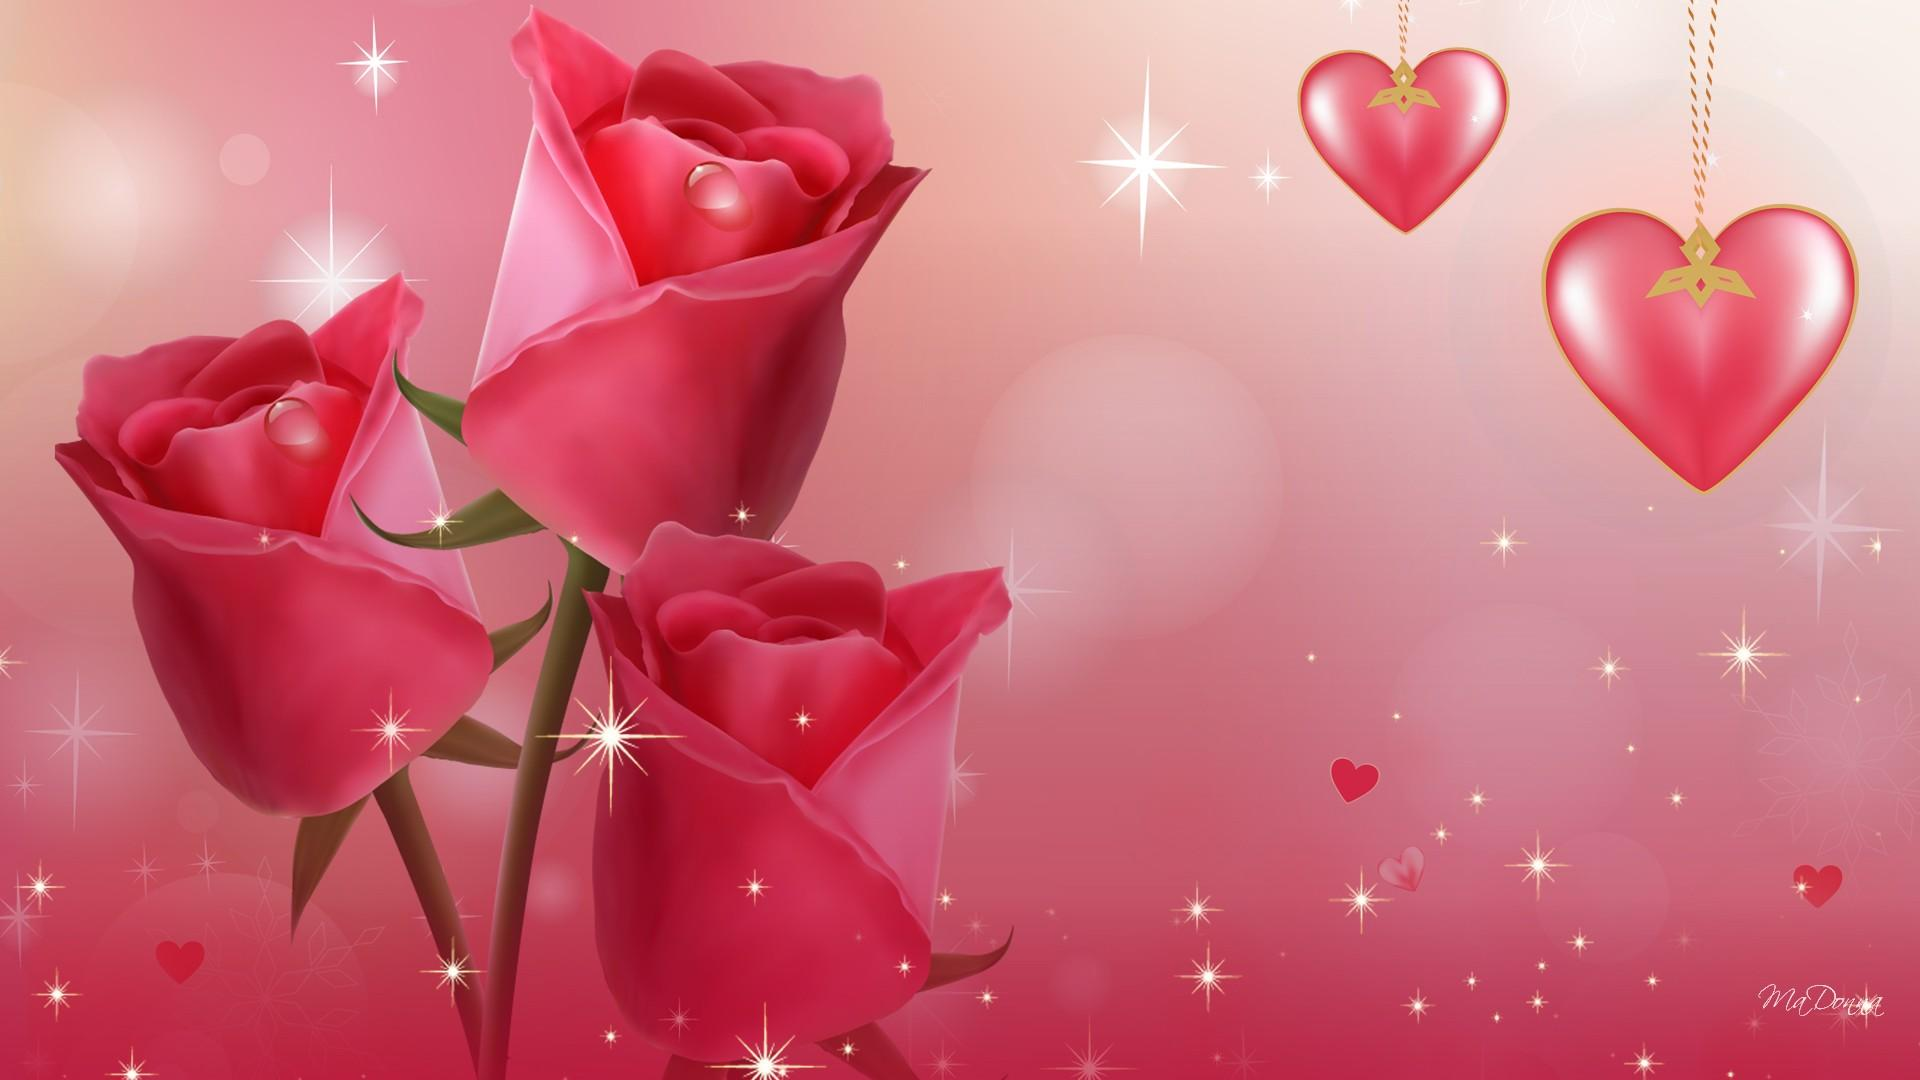 New Love Beautiful Wallpaper : Beautiful Love Wallpaper HD - WallpaperSafari